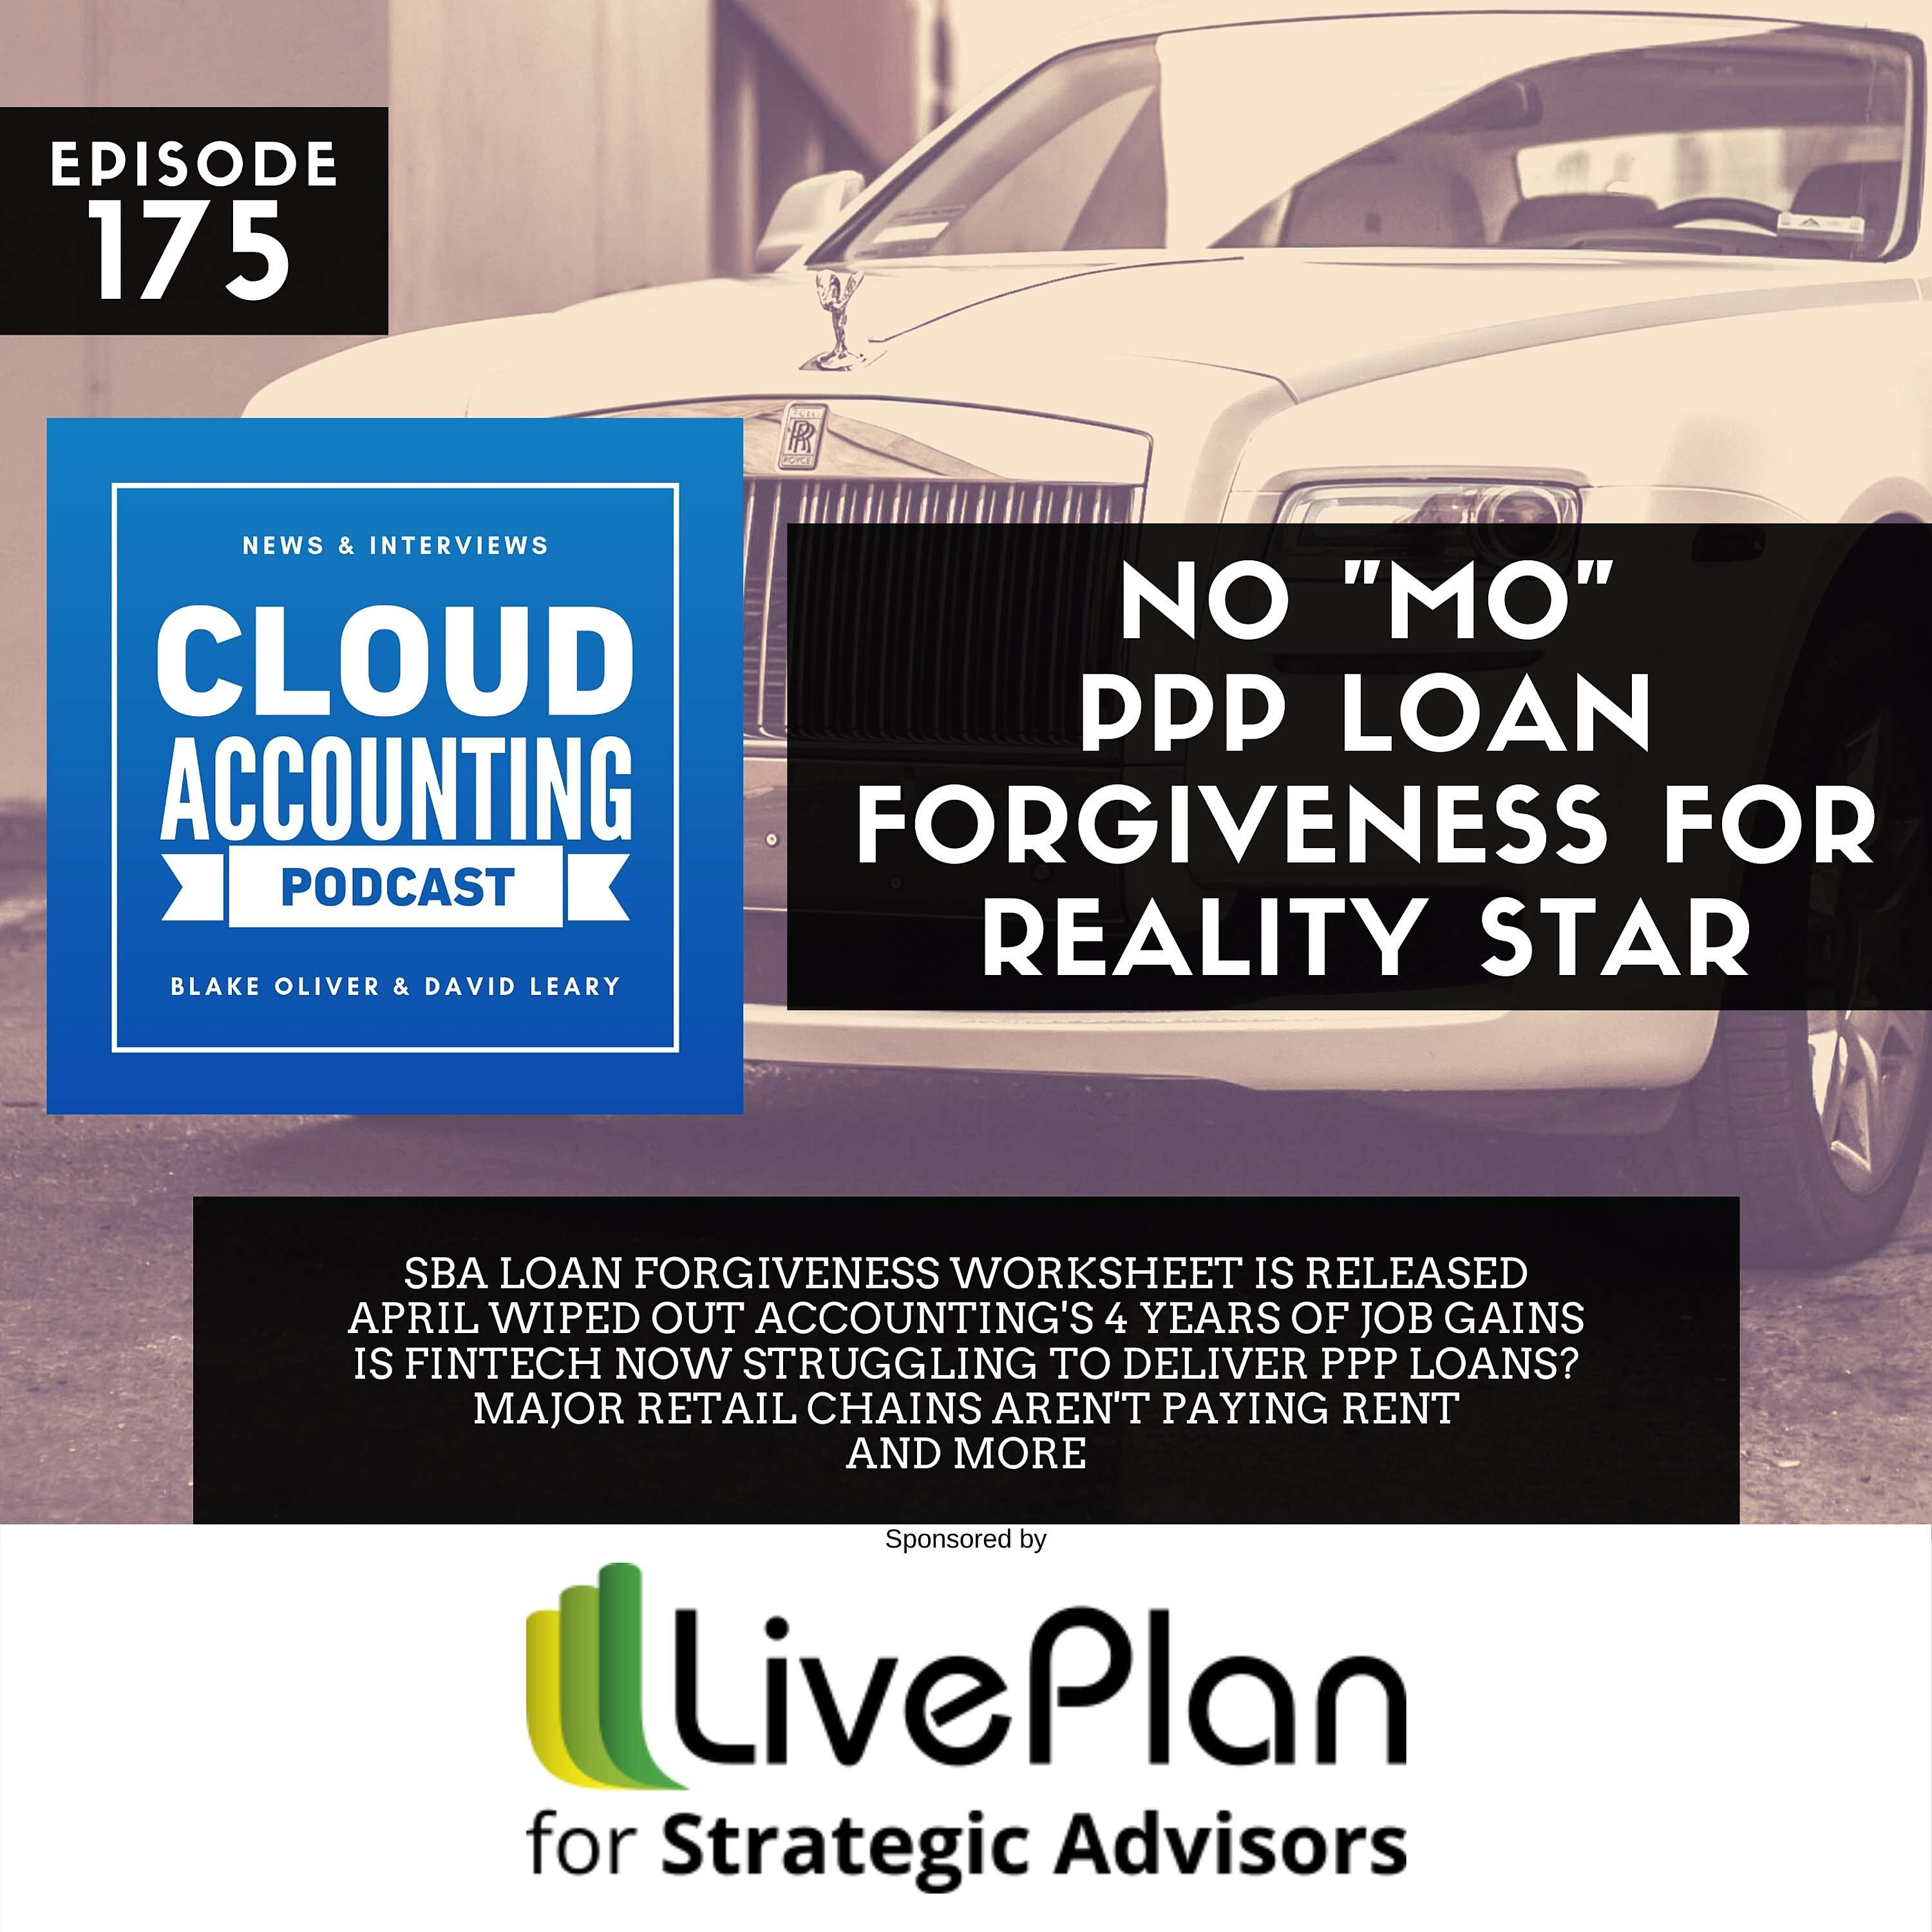 """No """"Mo"""" PPP Loan Forgiveness for Reality Star"""